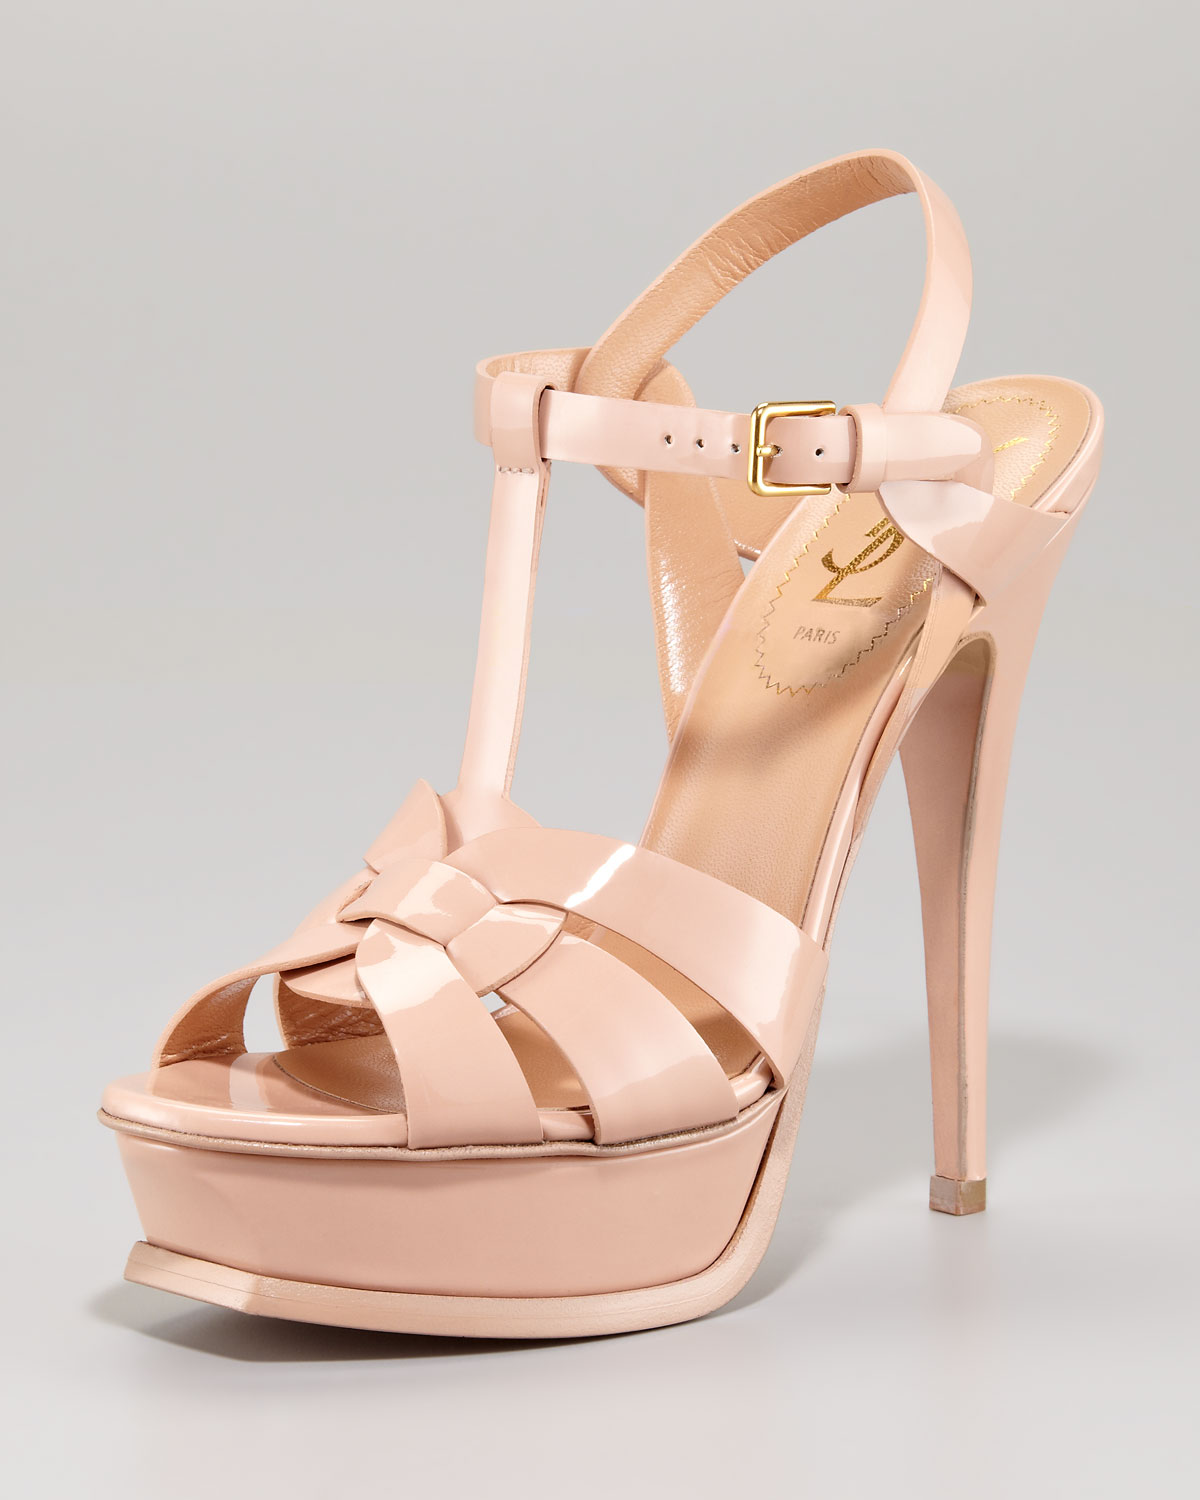 11e035038f1 Saint Laurent Patent Leather Tribute Sandal in Natural - Lyst